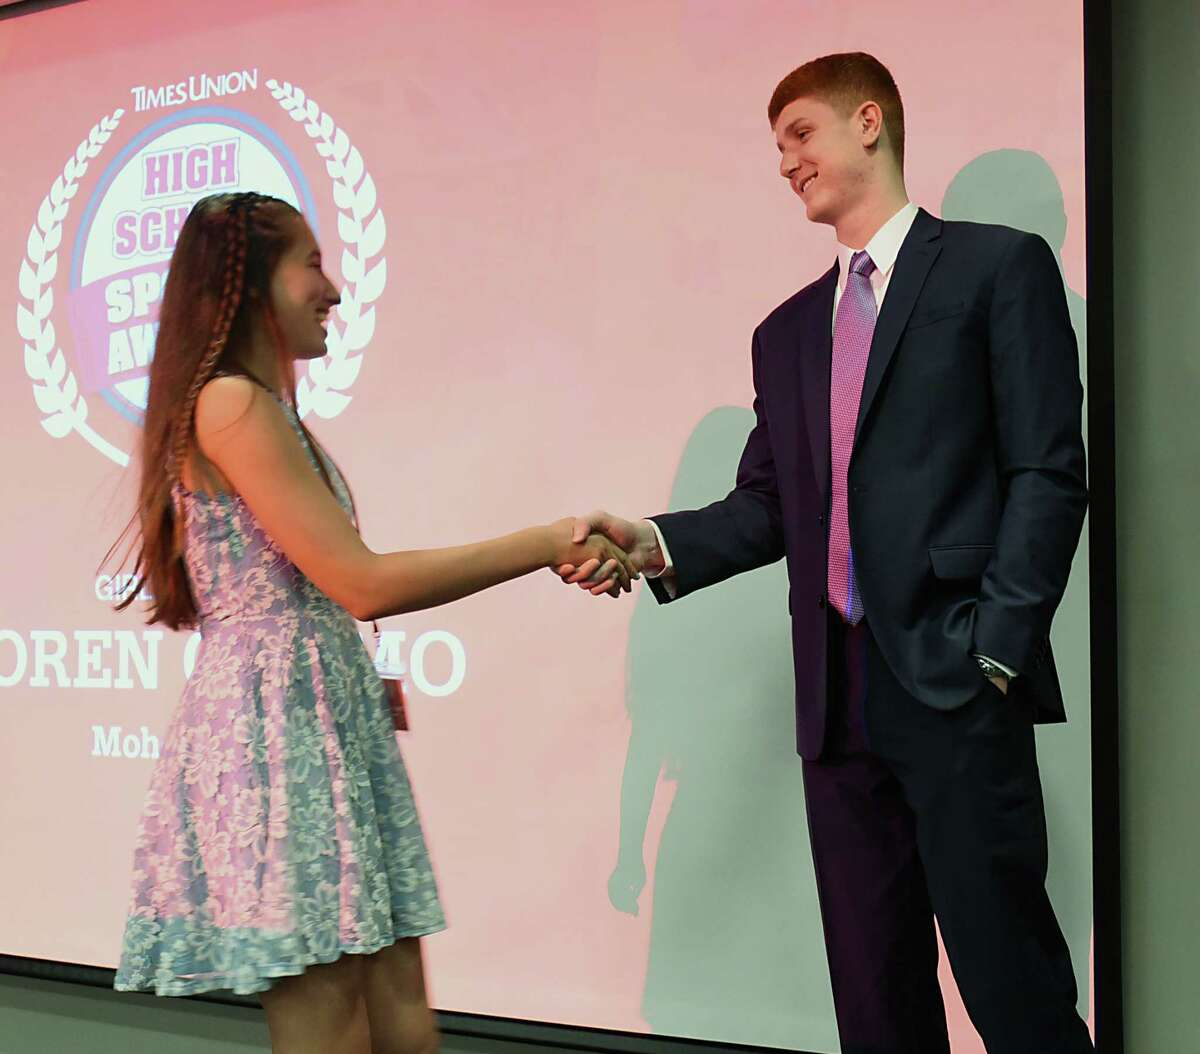 Mohonasen's Loren Cuomo shakes hands with local NBA star Kevin Huerter after she received the girls tennis award during the second annual High School Sports Awards show at the Hearst Media Center on Wednesday, June 19, 2019 in Albany, N.Y. (Lori Van Buren/Times Union)